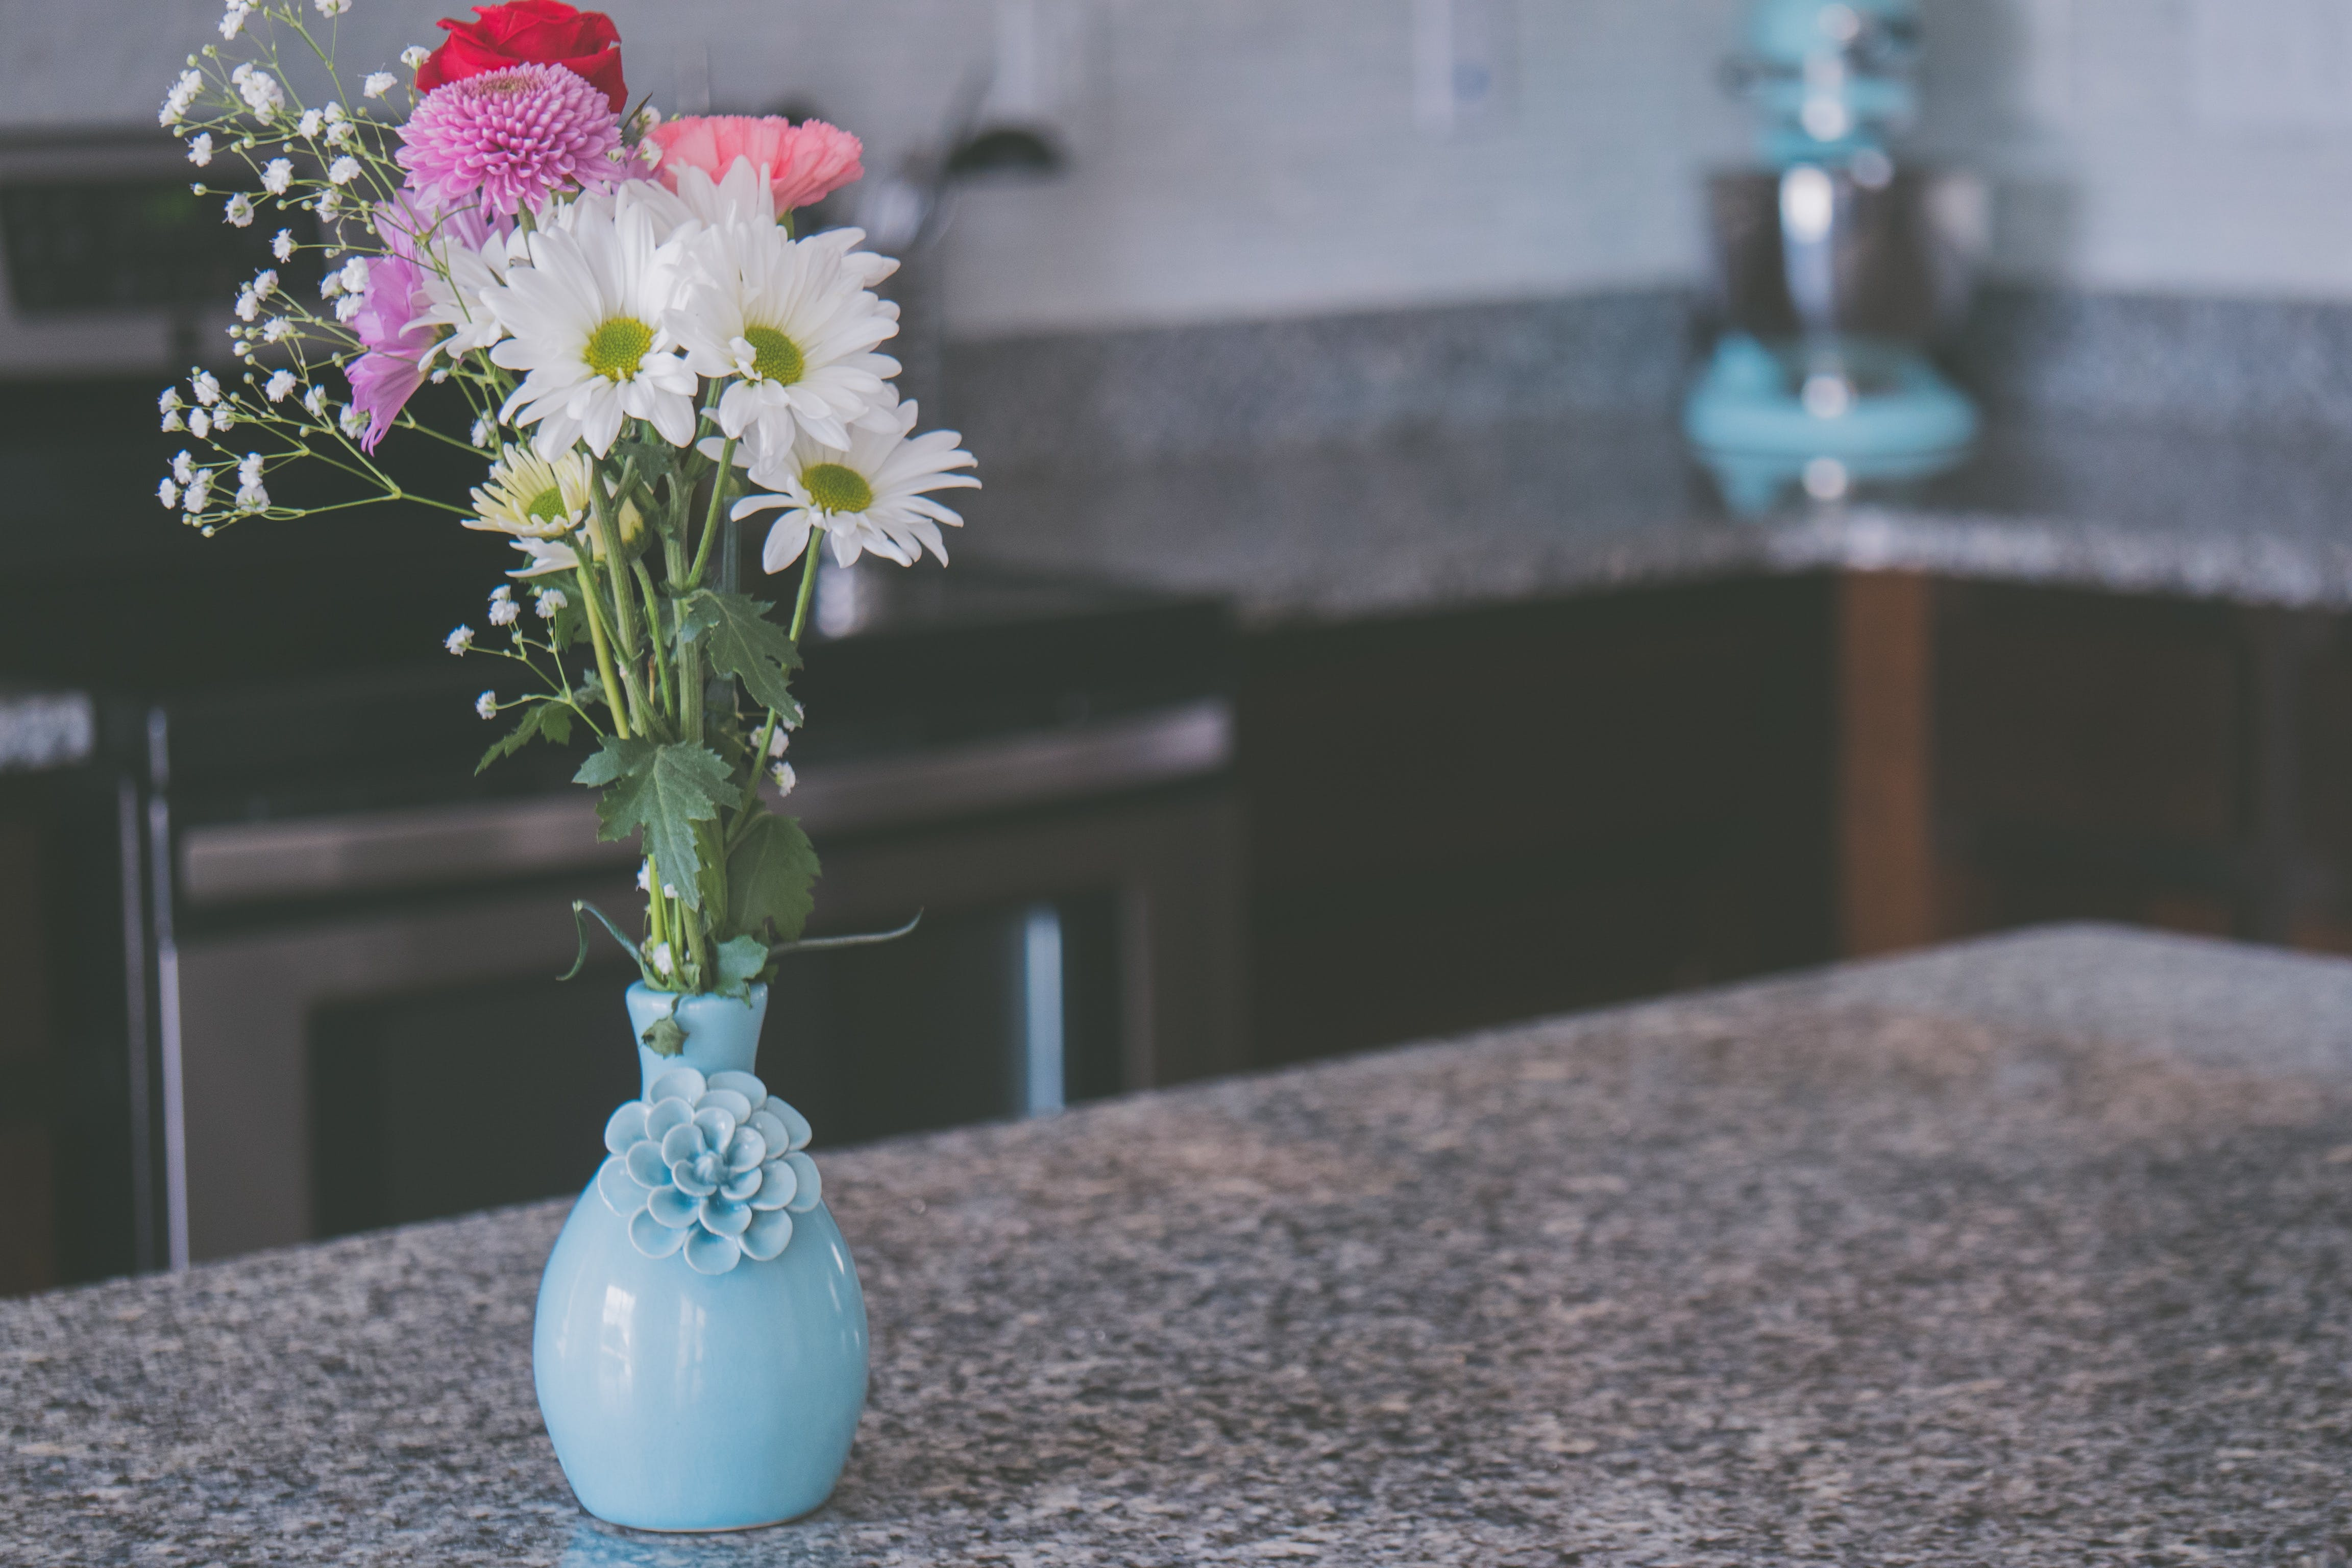 White Petaled Flowers With Teal Ceramic Vase